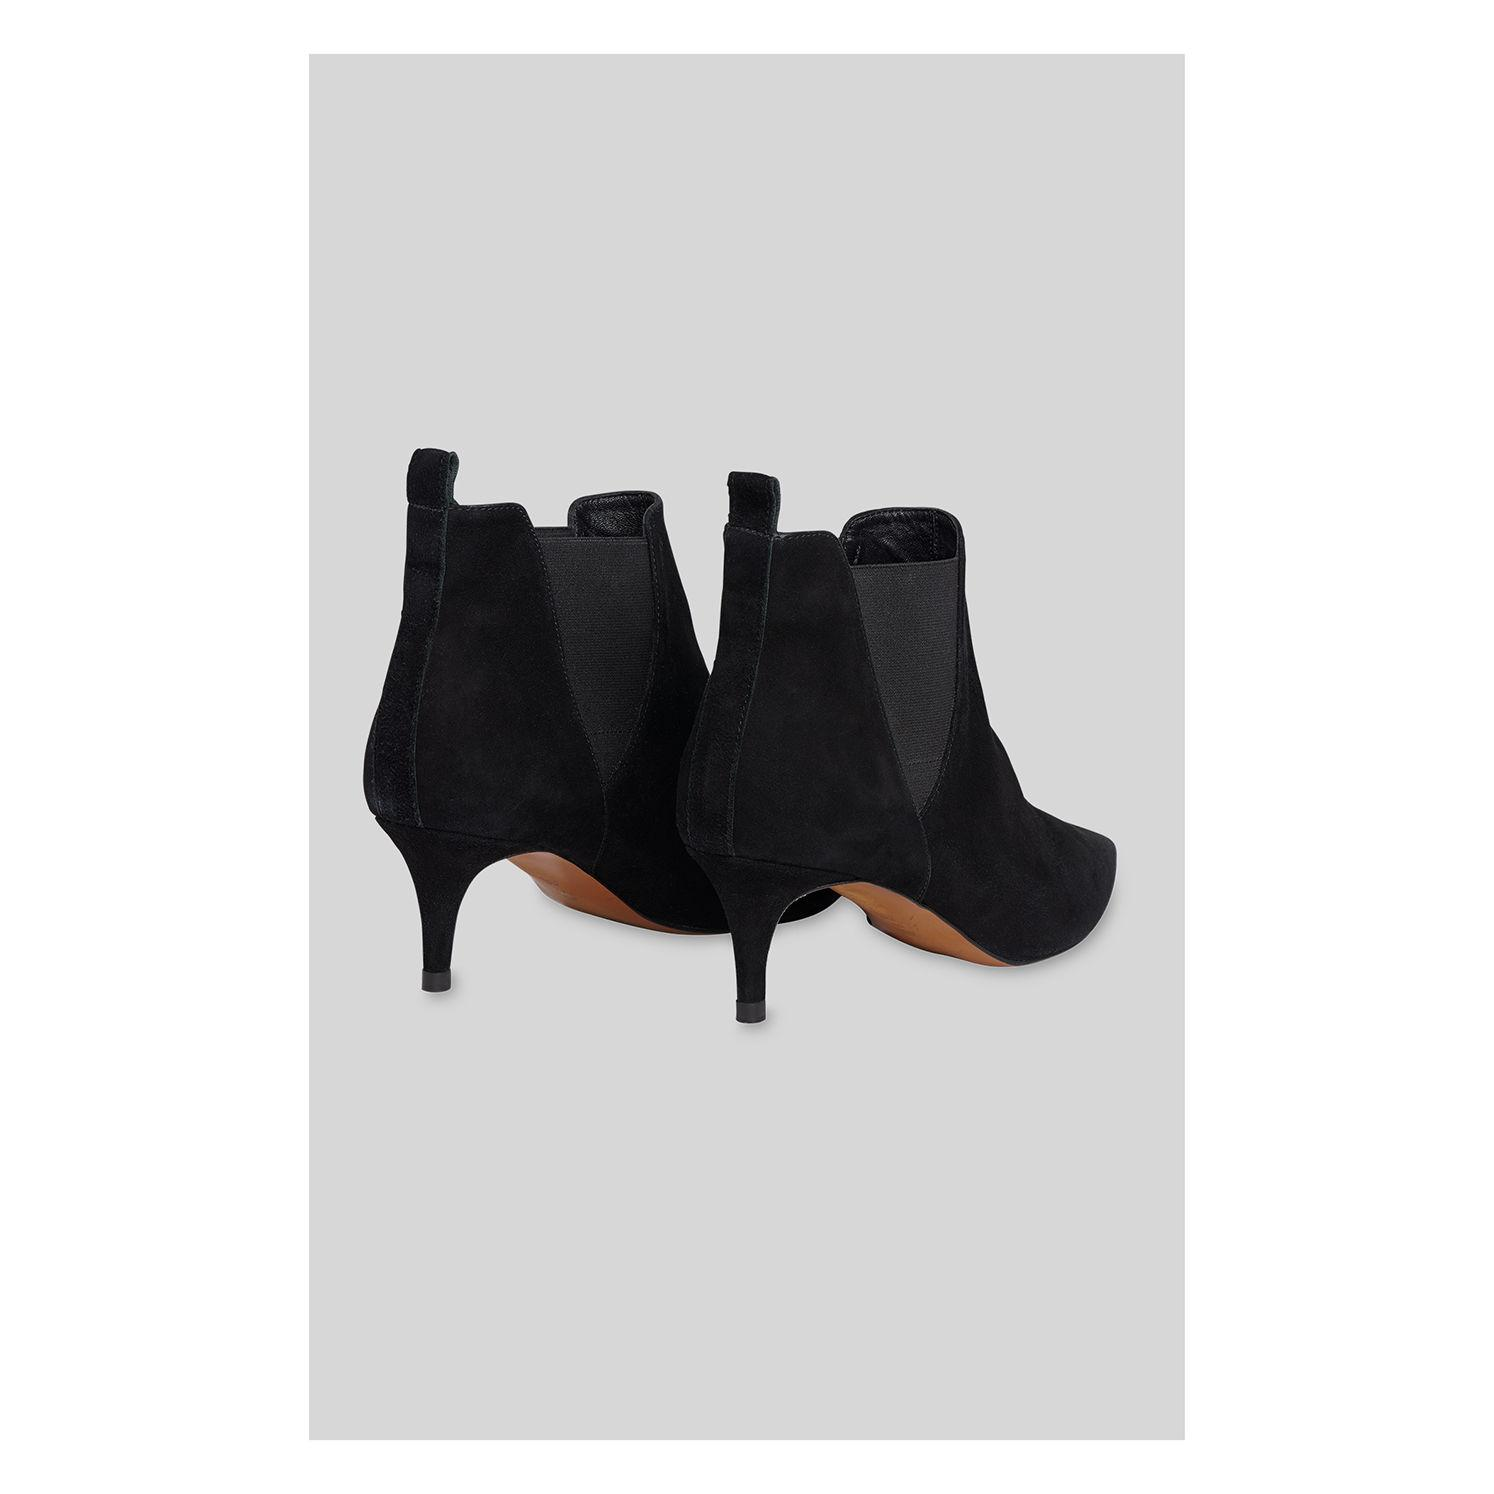 6acf36c33db2 Whistles - Black Orley Suede Kitten Heel Boot - Lyst. View fullscreen